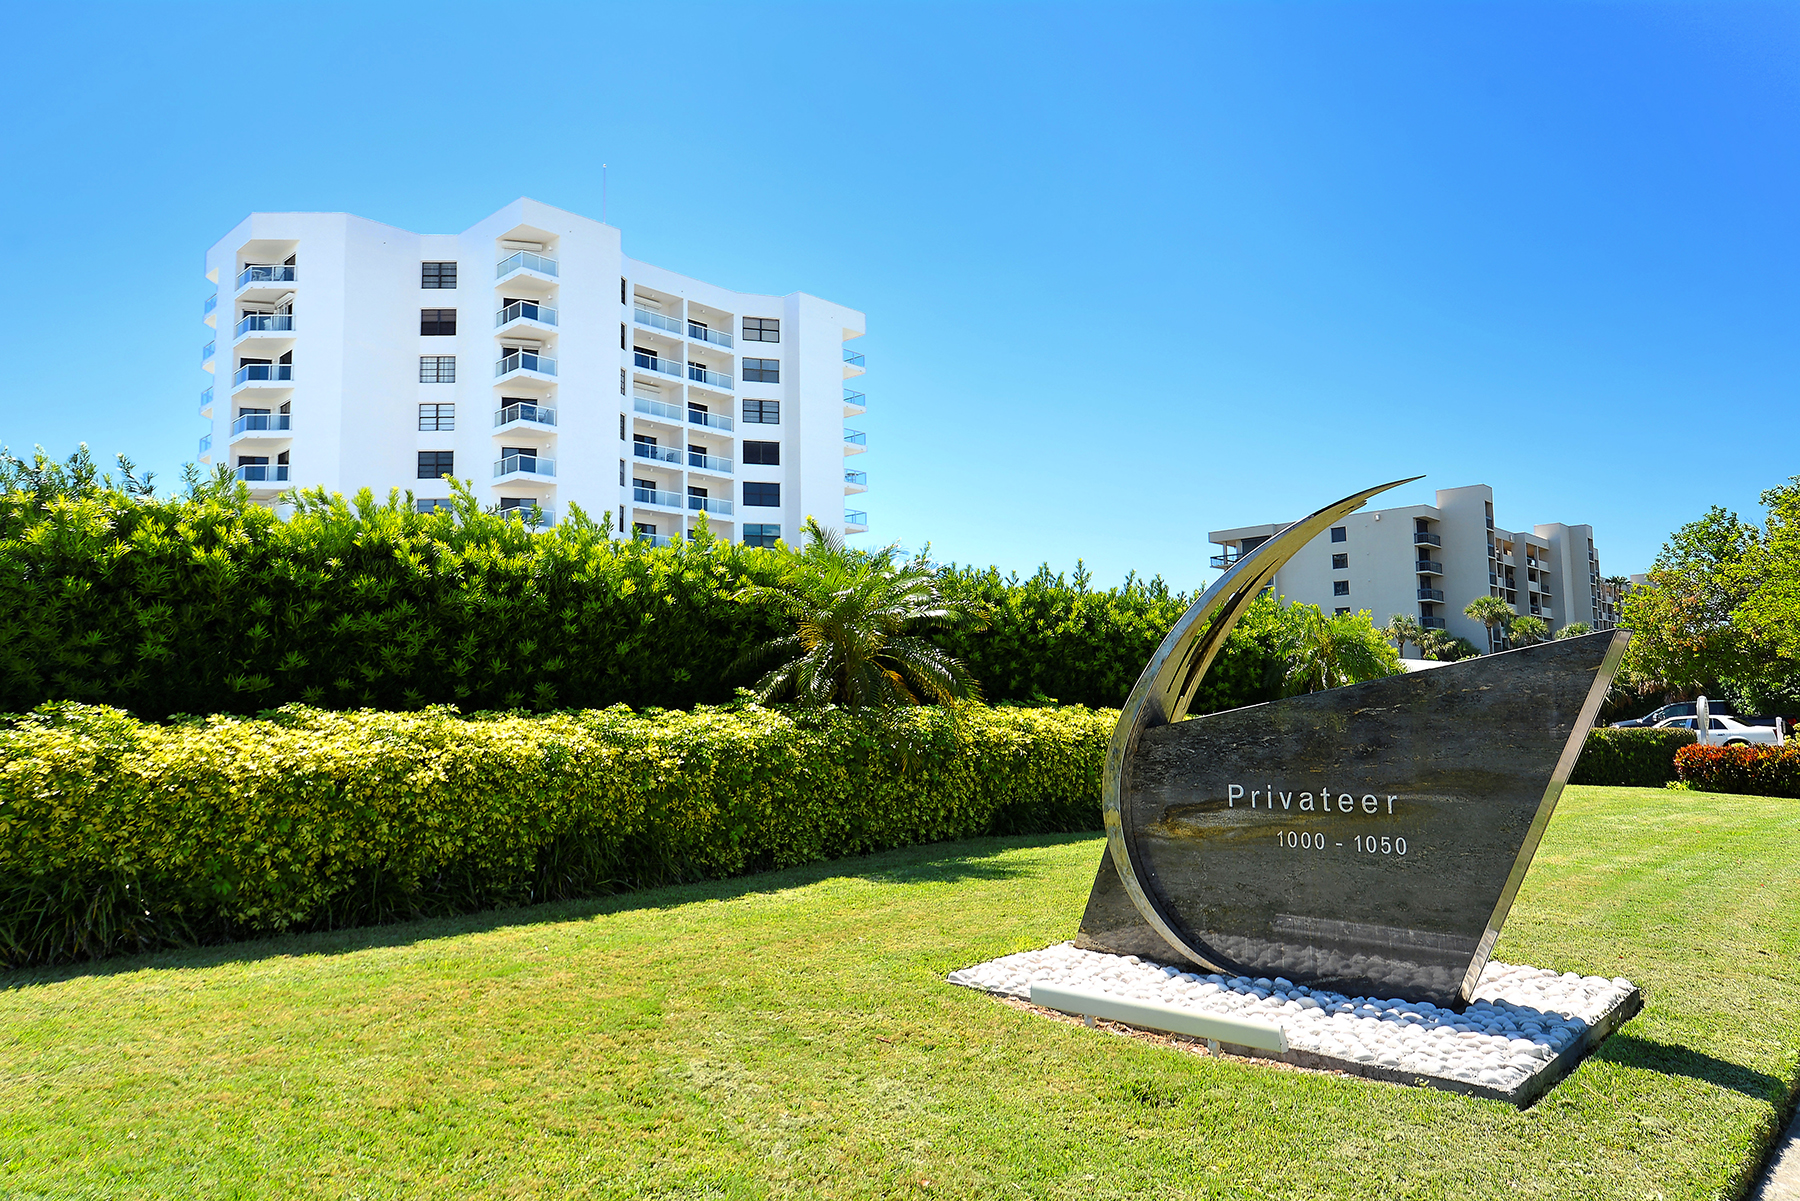 Condominium for Sale at LONGBOAT KEY 1050 Longboat Club Rd 303 Longboat Key, Florida, 34228 United States